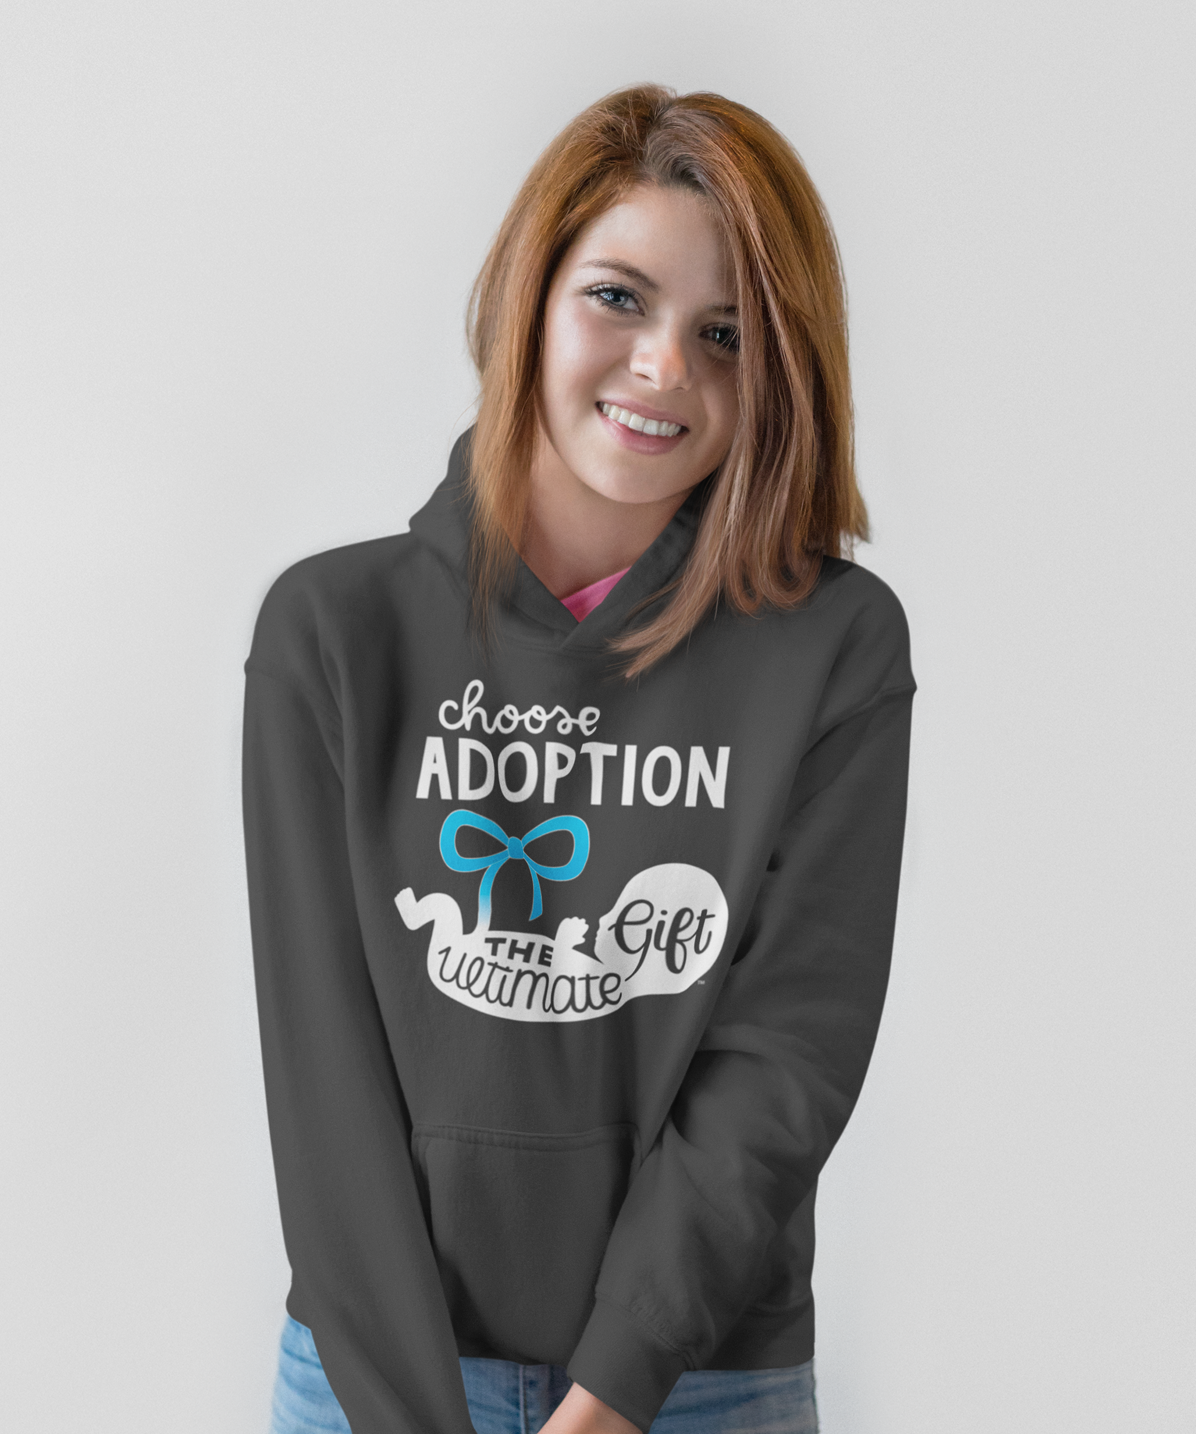 Fifteen percent of proceeds from LifeCulture's first 1,500 orders are going to an organization that helps families going through an unplanned pregnancy. (Photo: Life Culture)